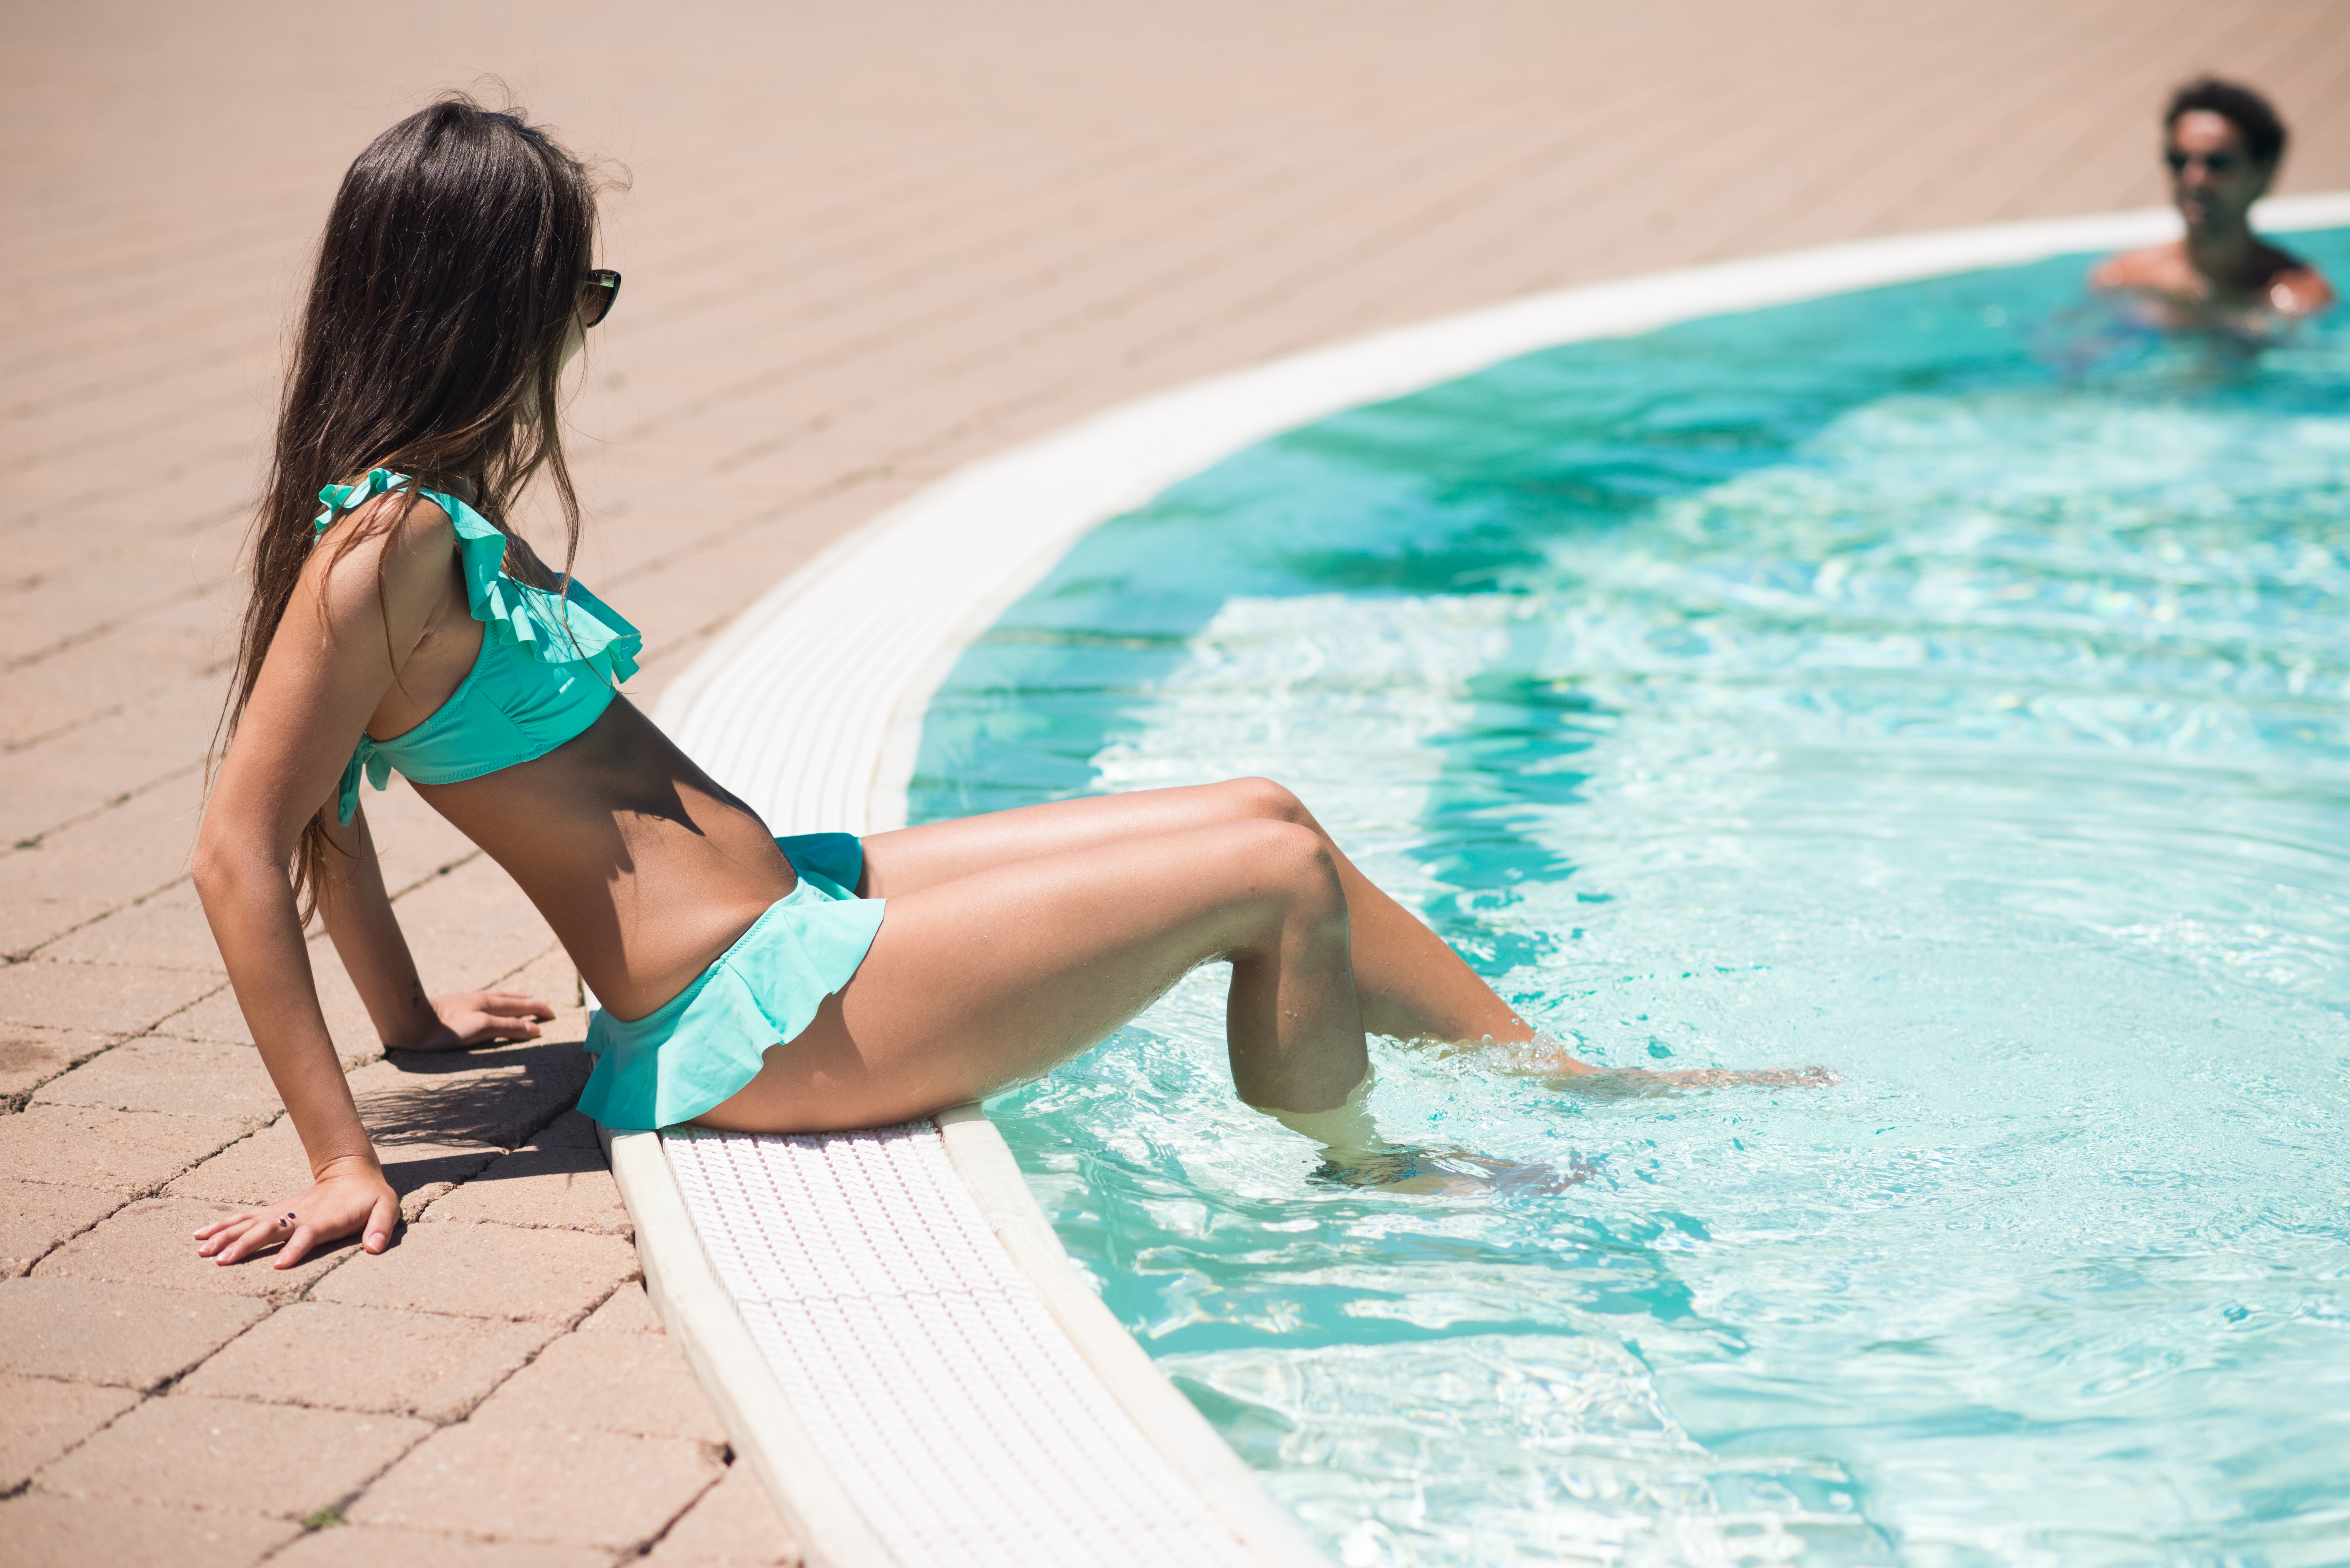 Woman refreshing her feet on the poolside